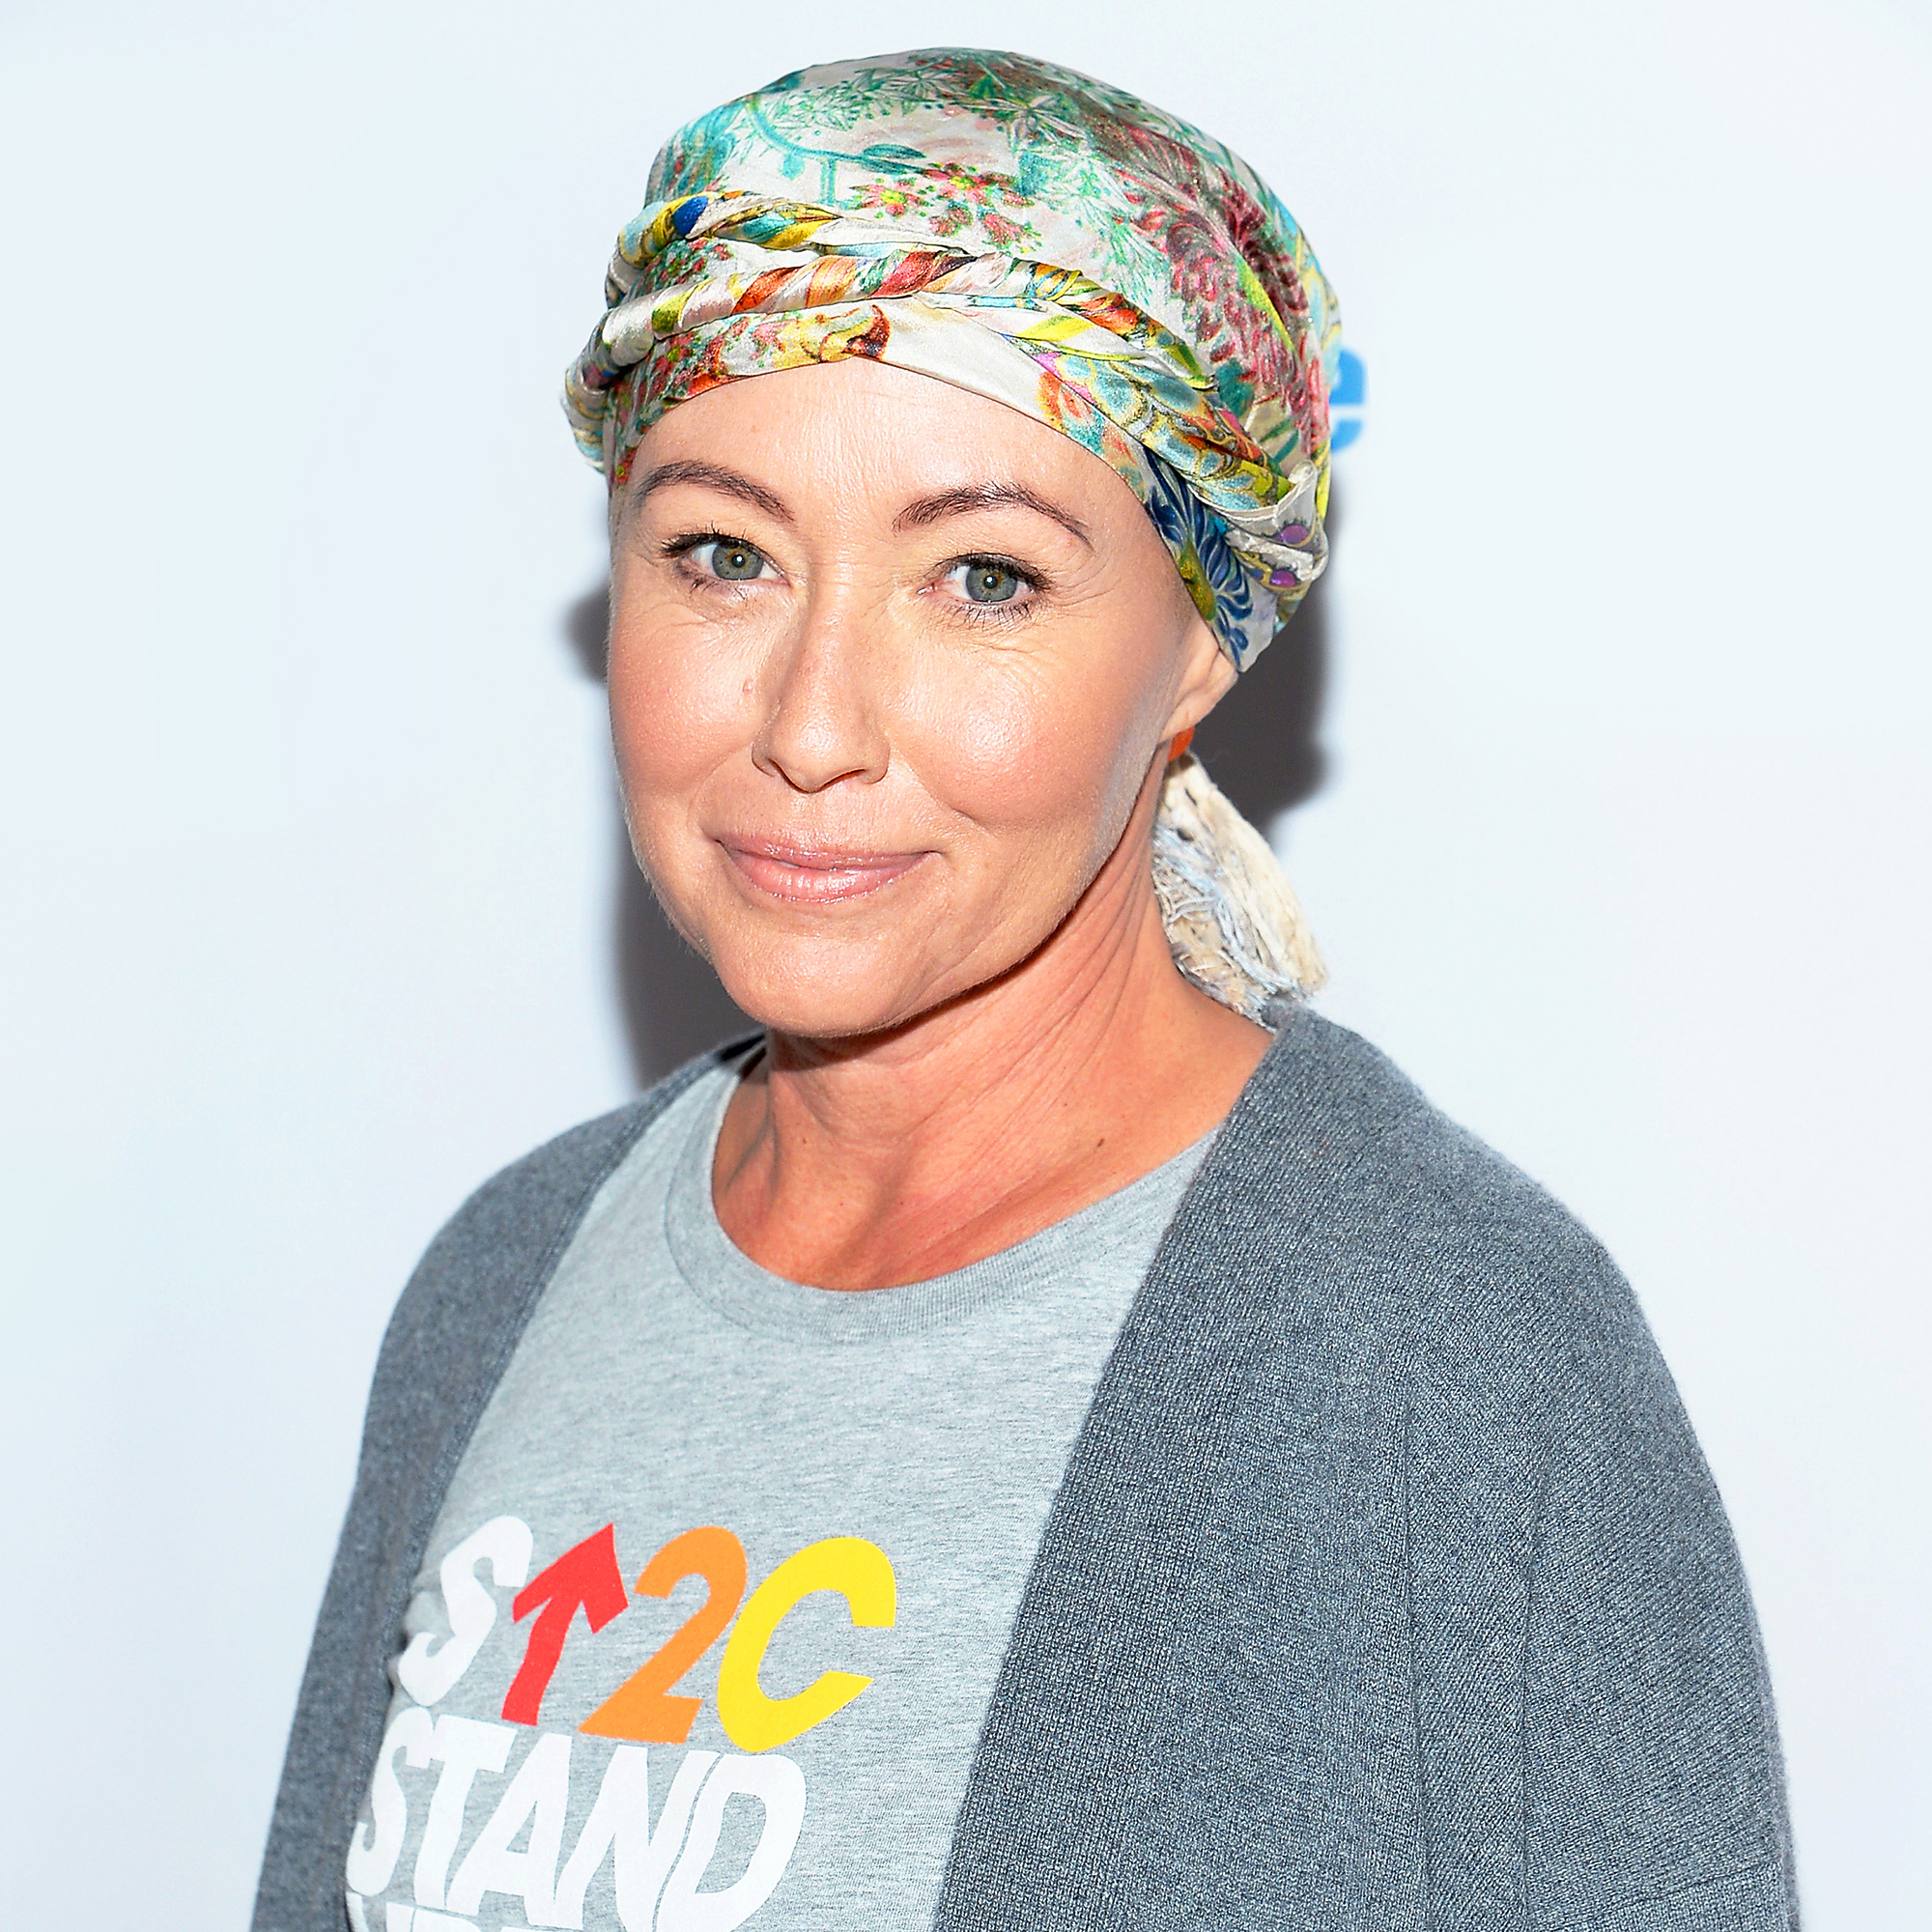 Shannen Doherty smiling. She has wrapped a scarf around her head